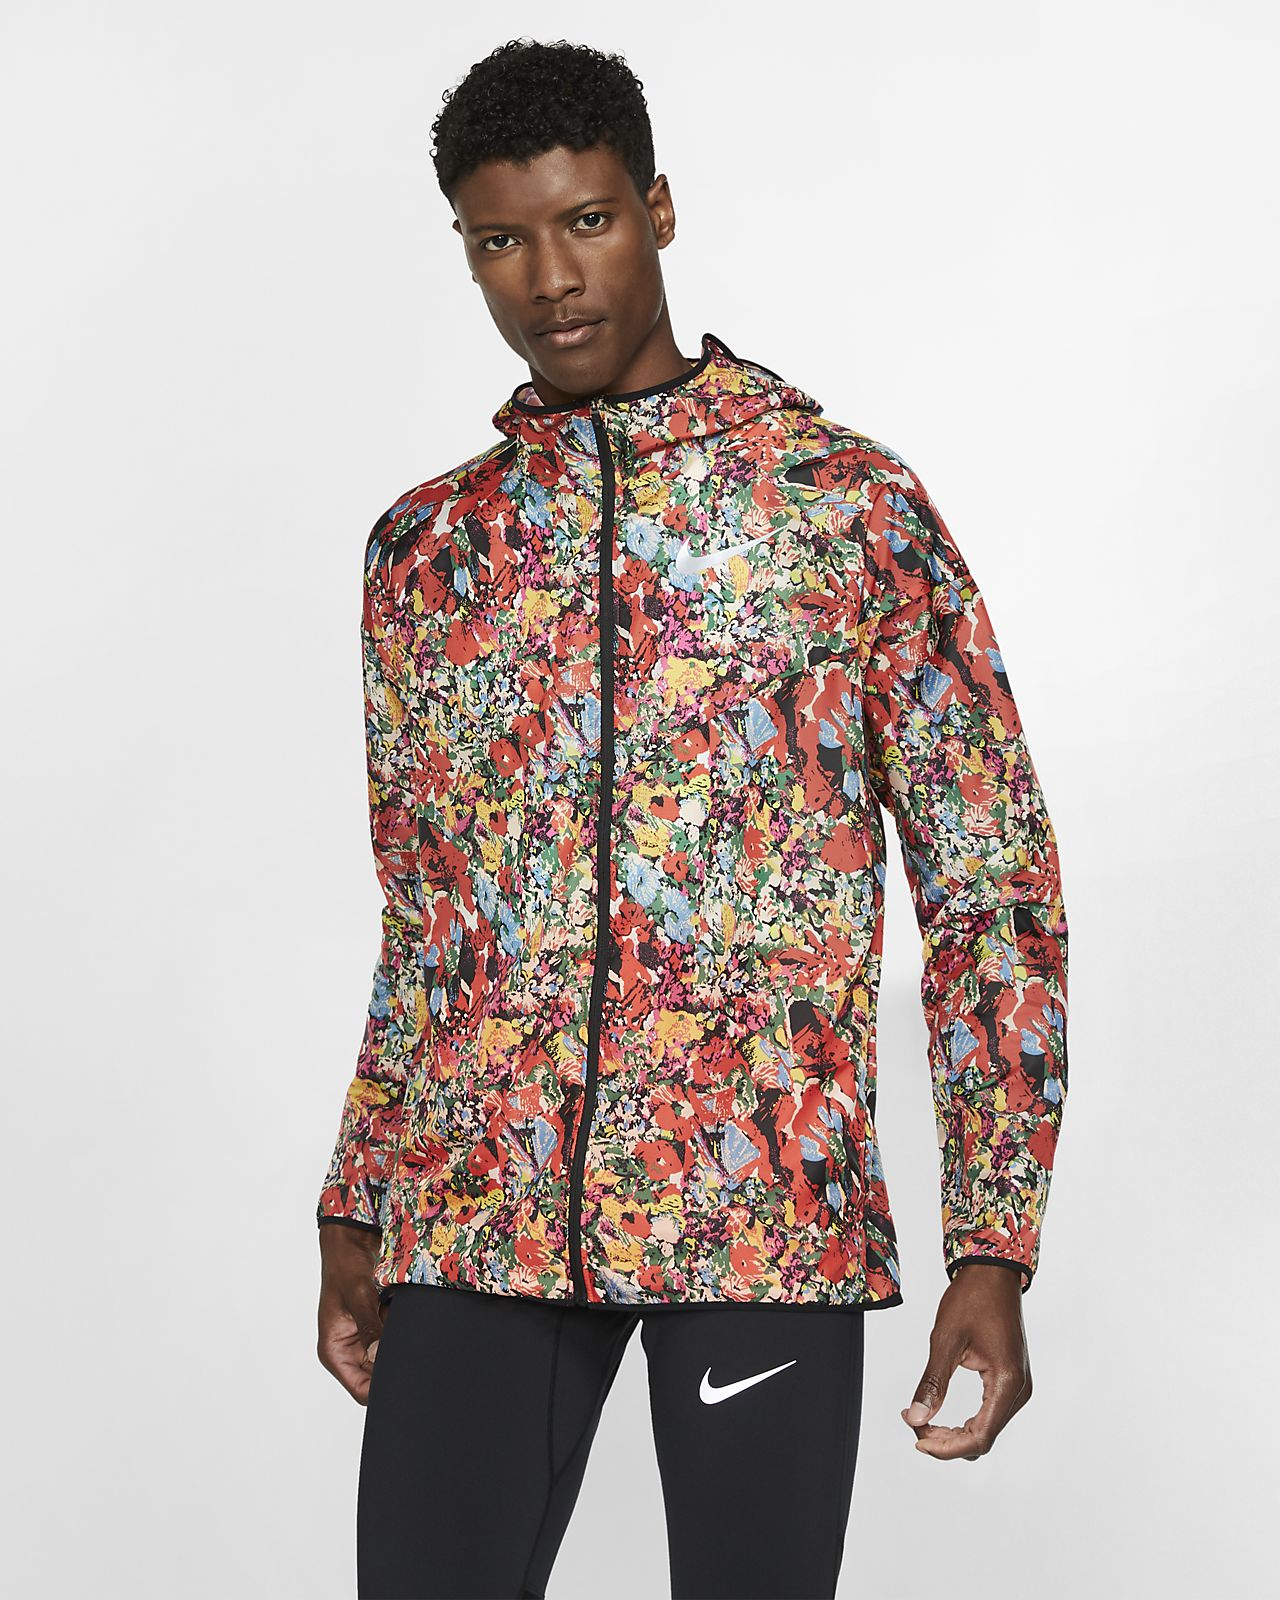 bfe3cbc7bd41 Nike Windrunner Men s Printed Running Jacket. Nike.com IE